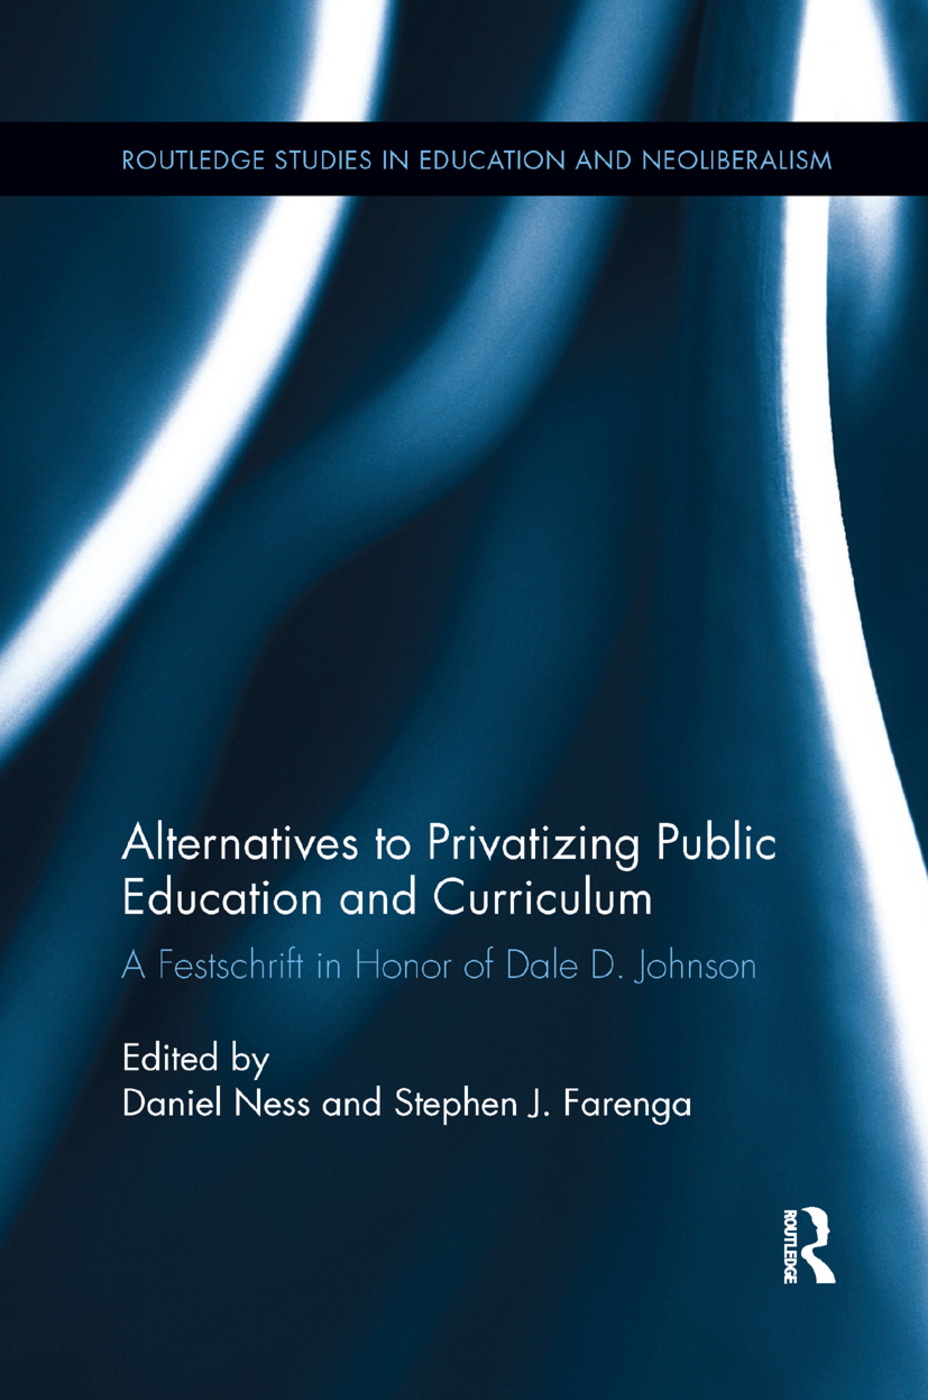 Alternatives to Privatizing Public Education and Curriculum: Festschrift in Honor of Dale D. Johnson book cover